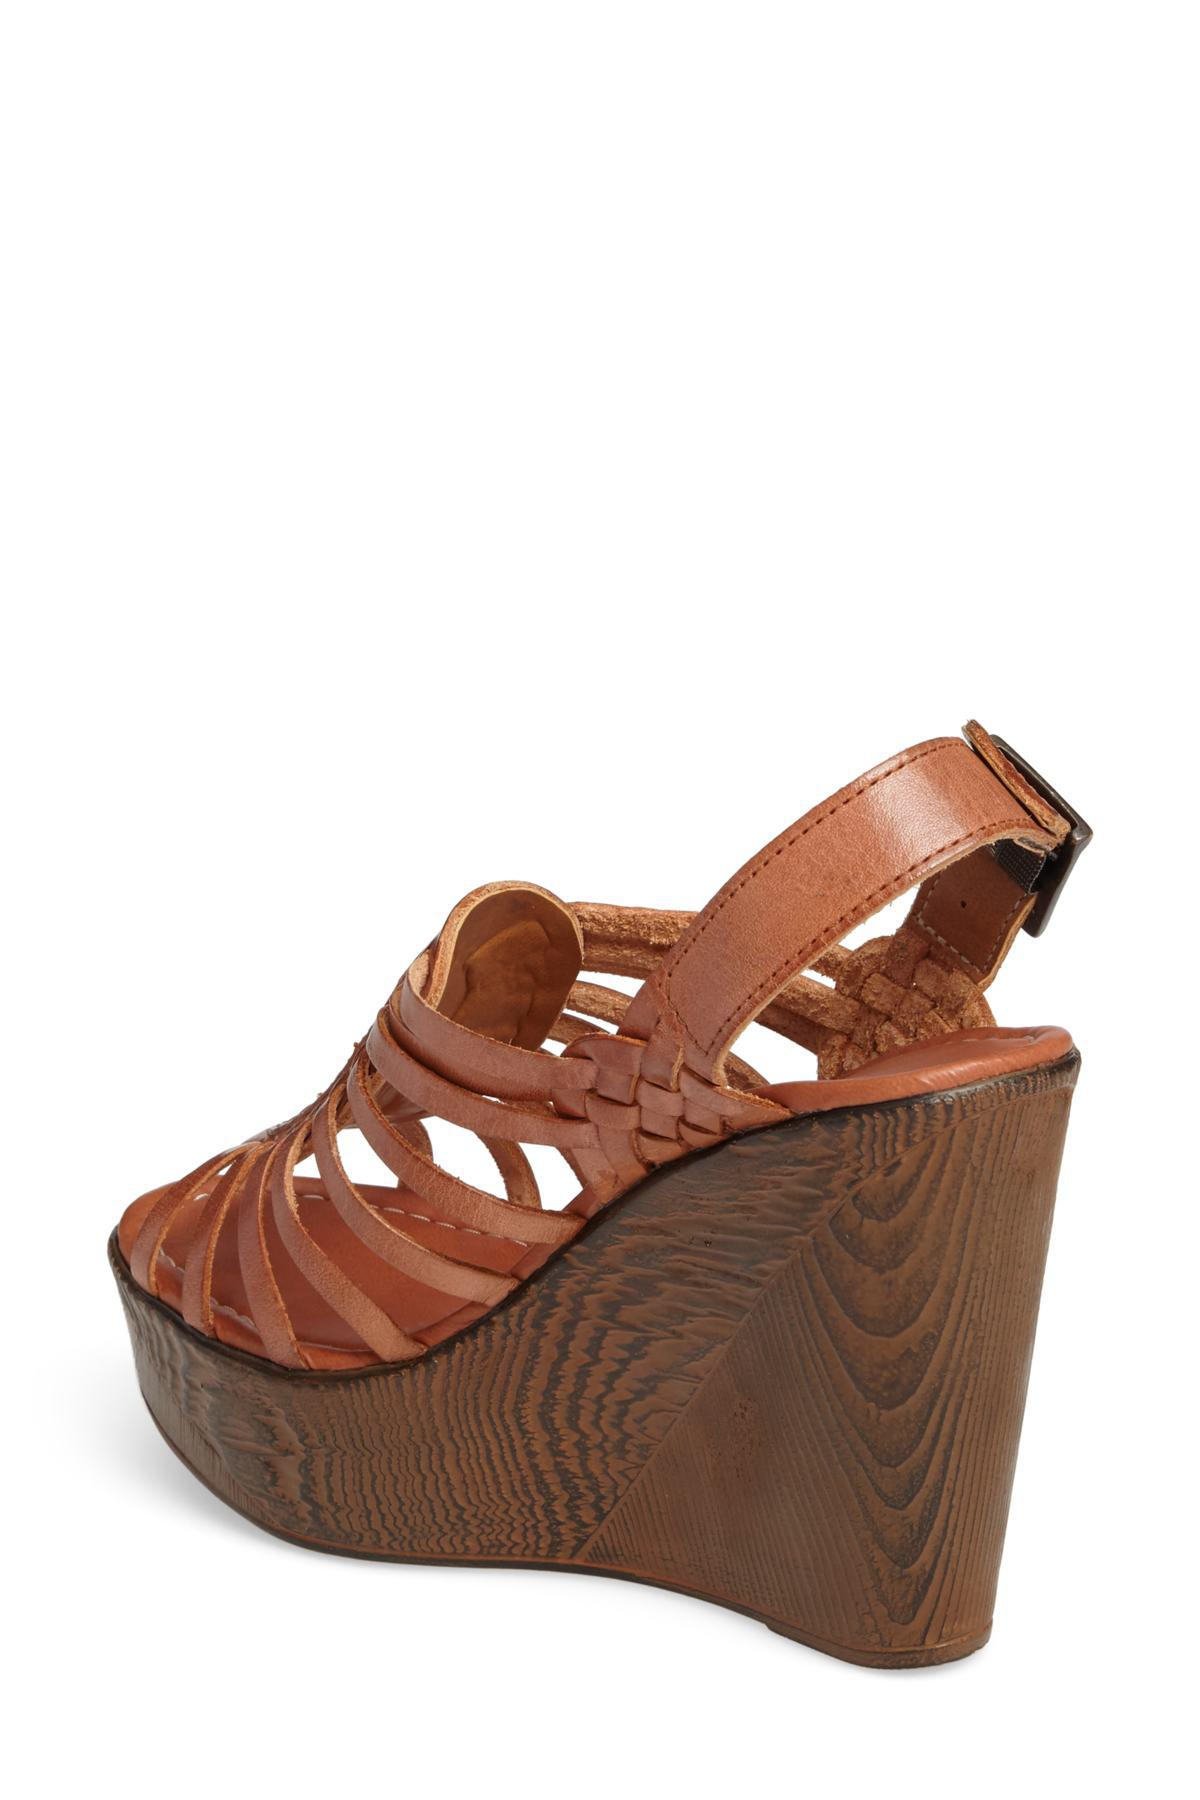 b3ca828c62e Lyst - Very Volatile Prolific Wedge Sandal (women) in Brown